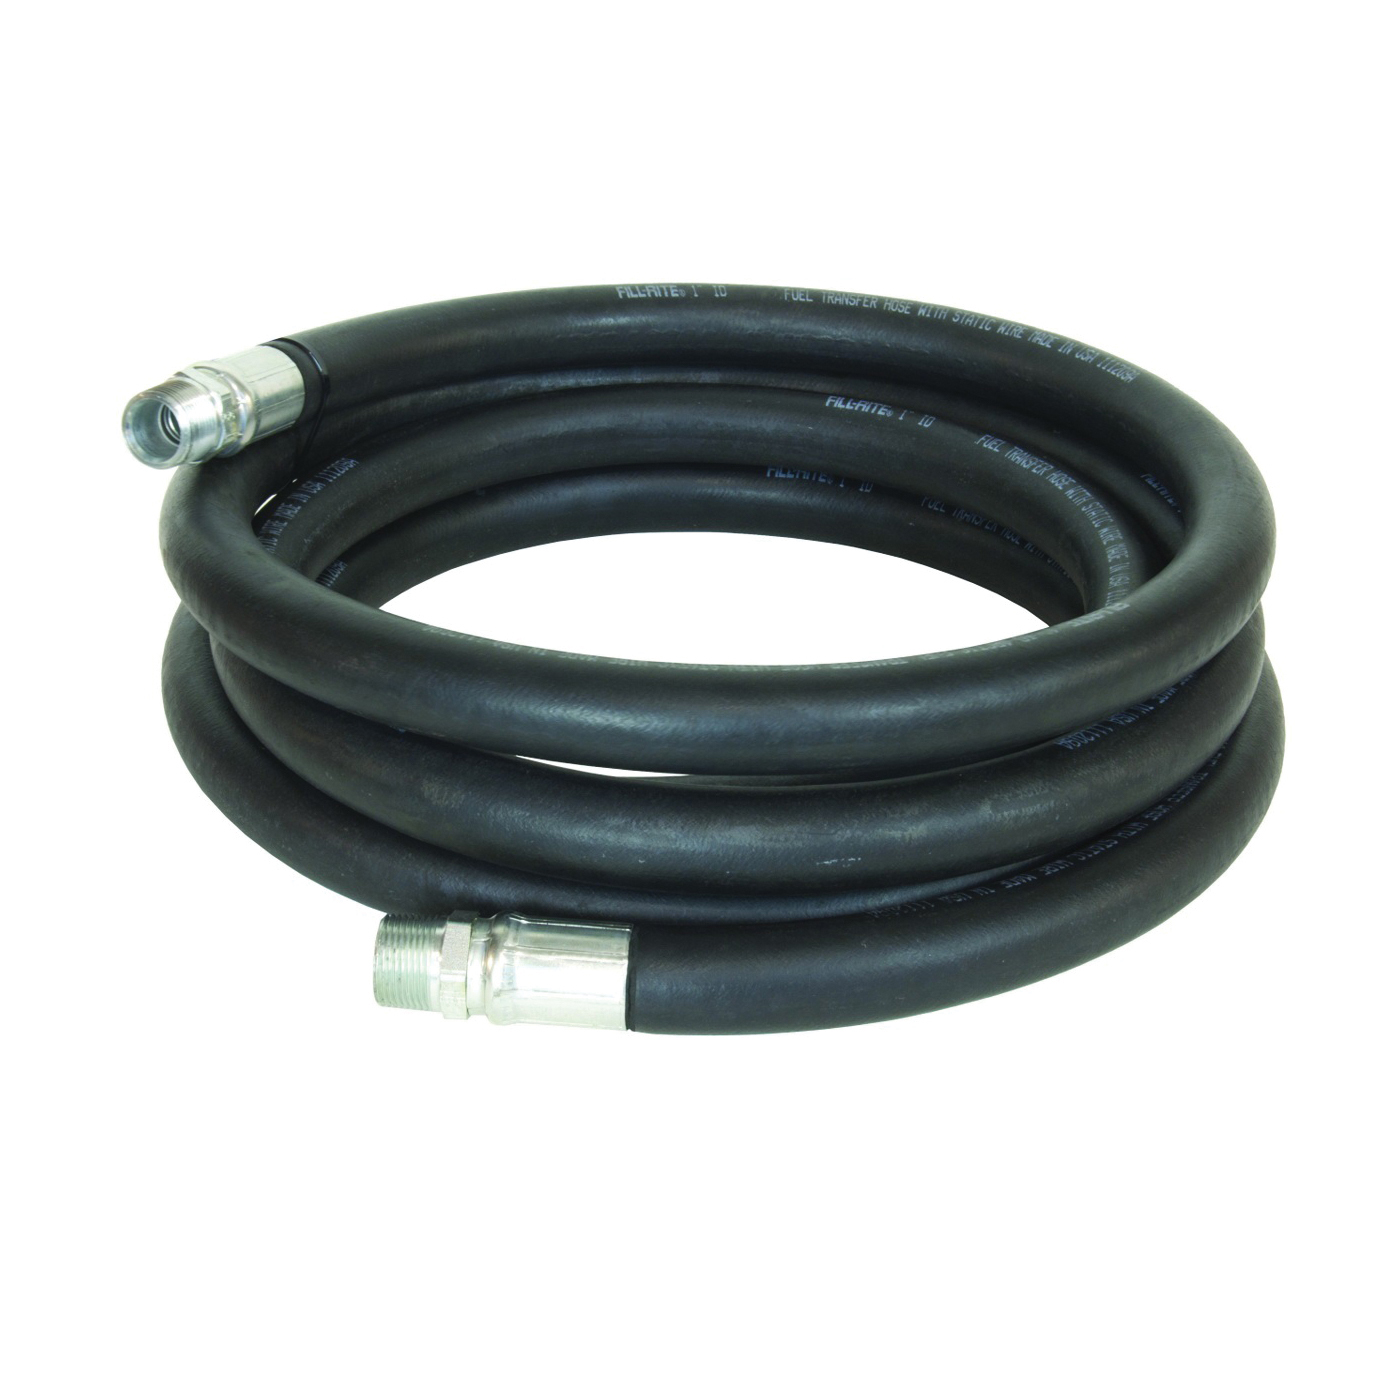 Picture of Fill-Rite FRH10020 Fuel Transfer Hose Male, 20 ft L, Male, Neoprene, Black